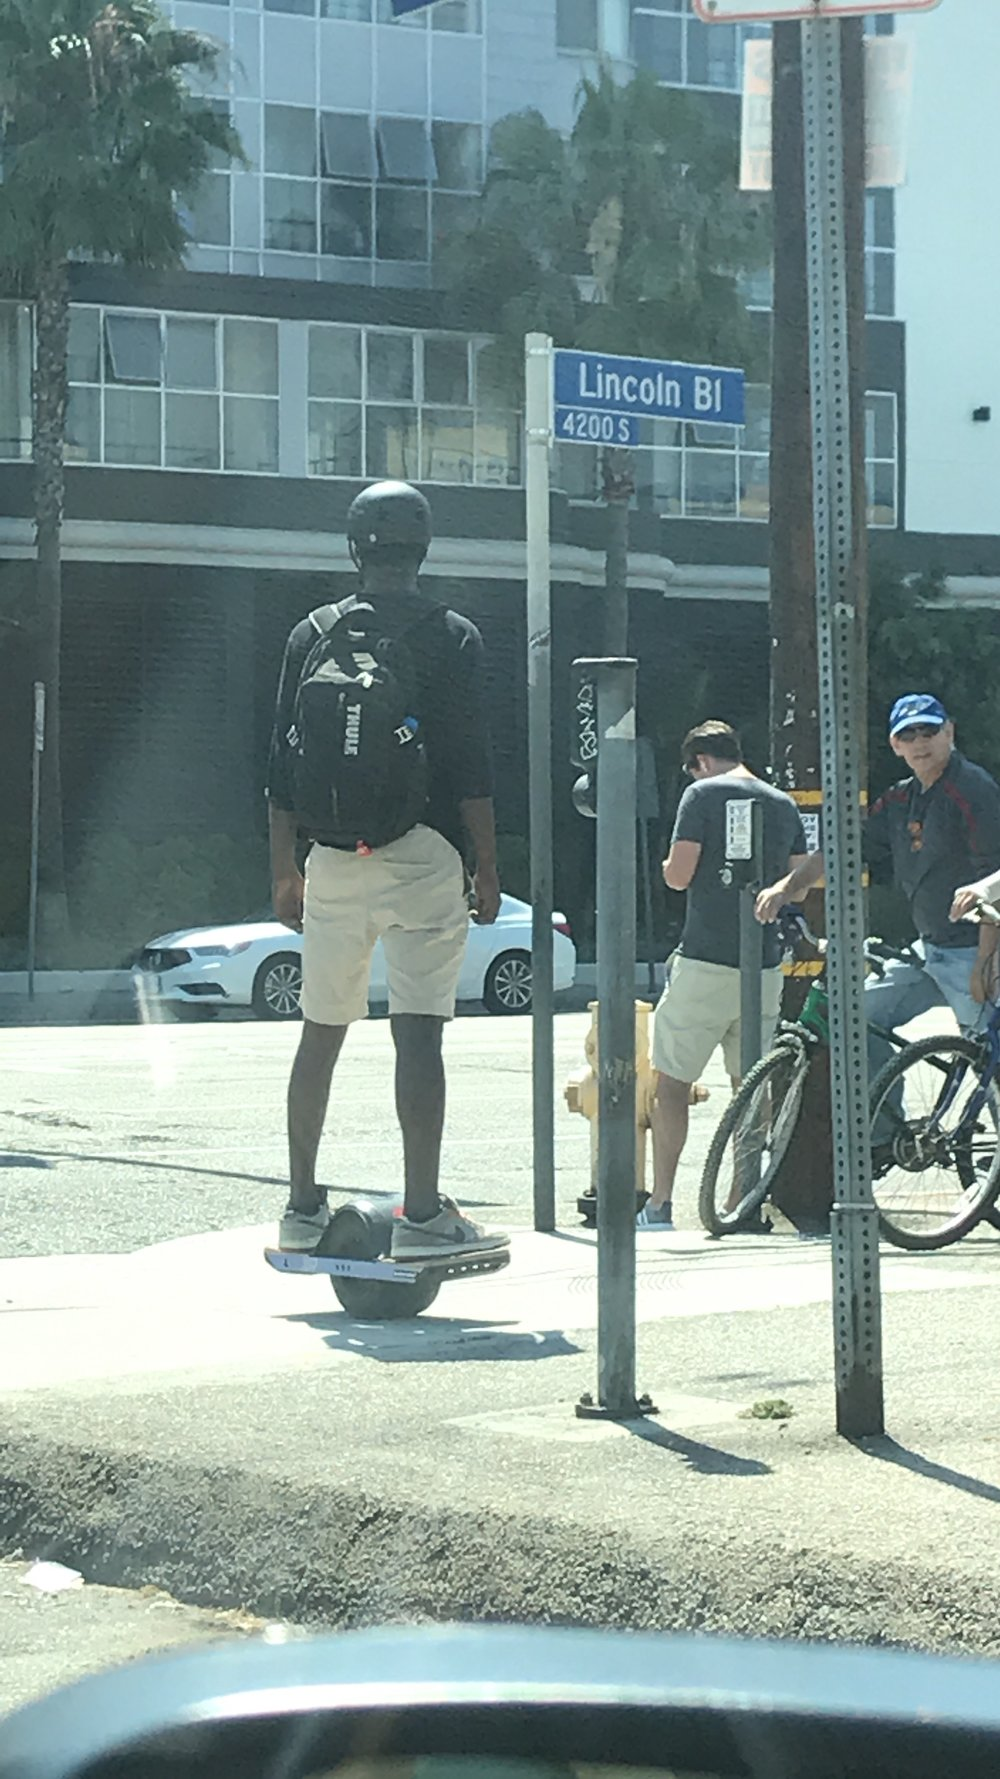 Driving to the Marina when I noticed this guy on this cool, one wheel, hover board type thing. I thought it was EVEN COOLER that he was wearing a helmet. Safety is sexy.